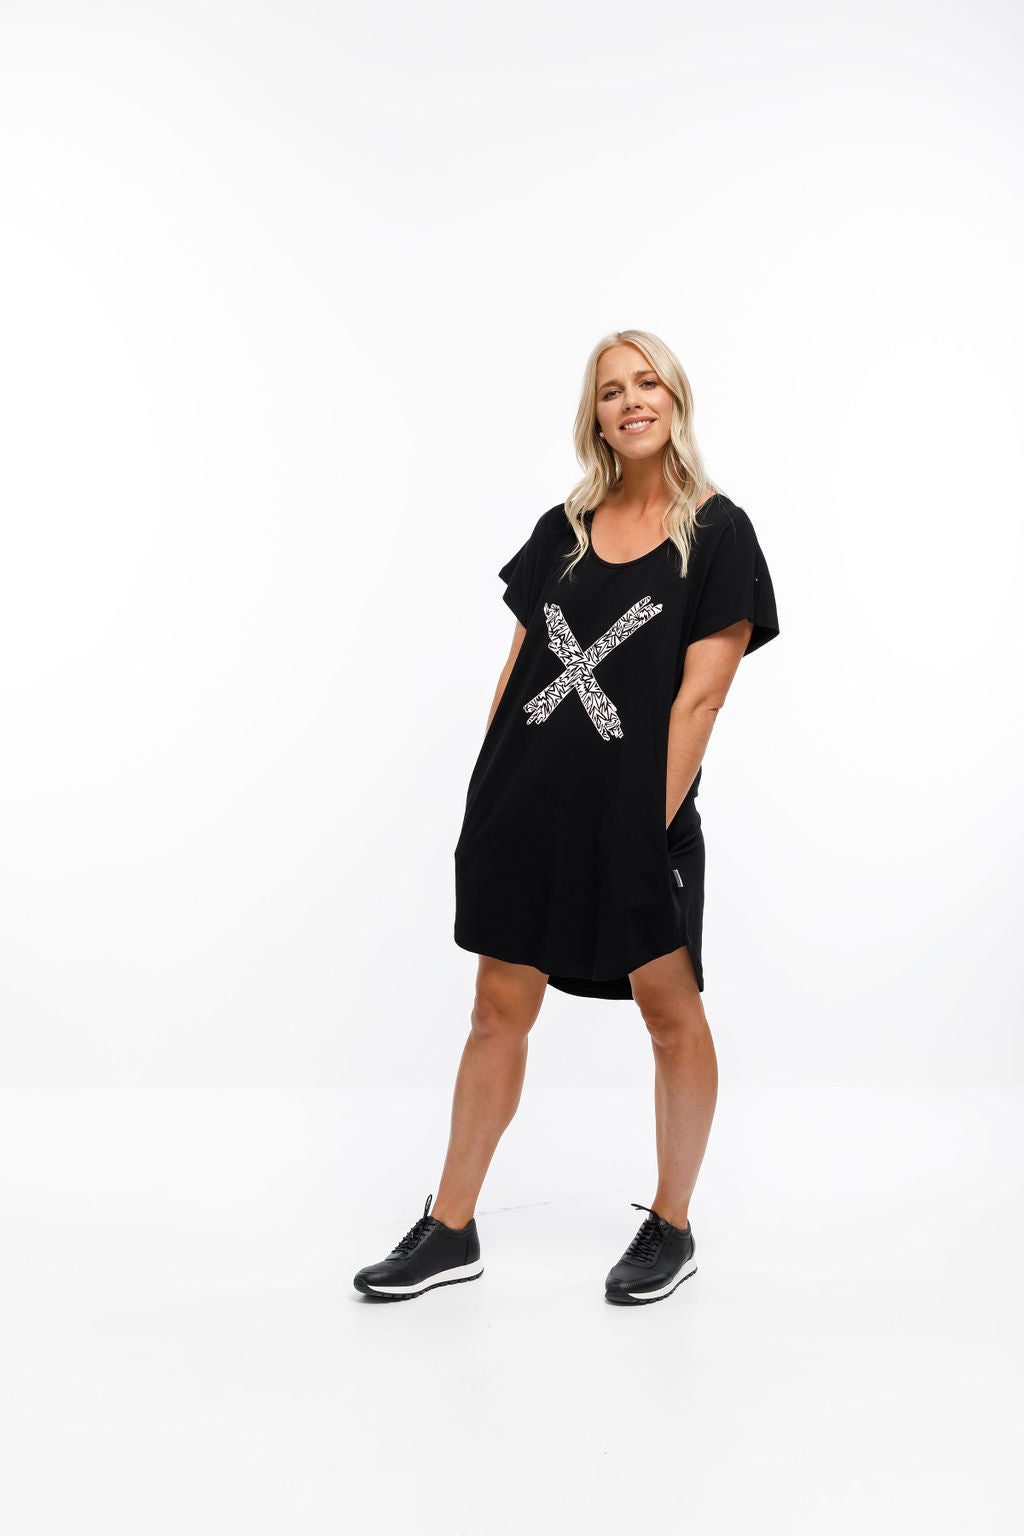 JACK DRESS - Black with Paper Plane X